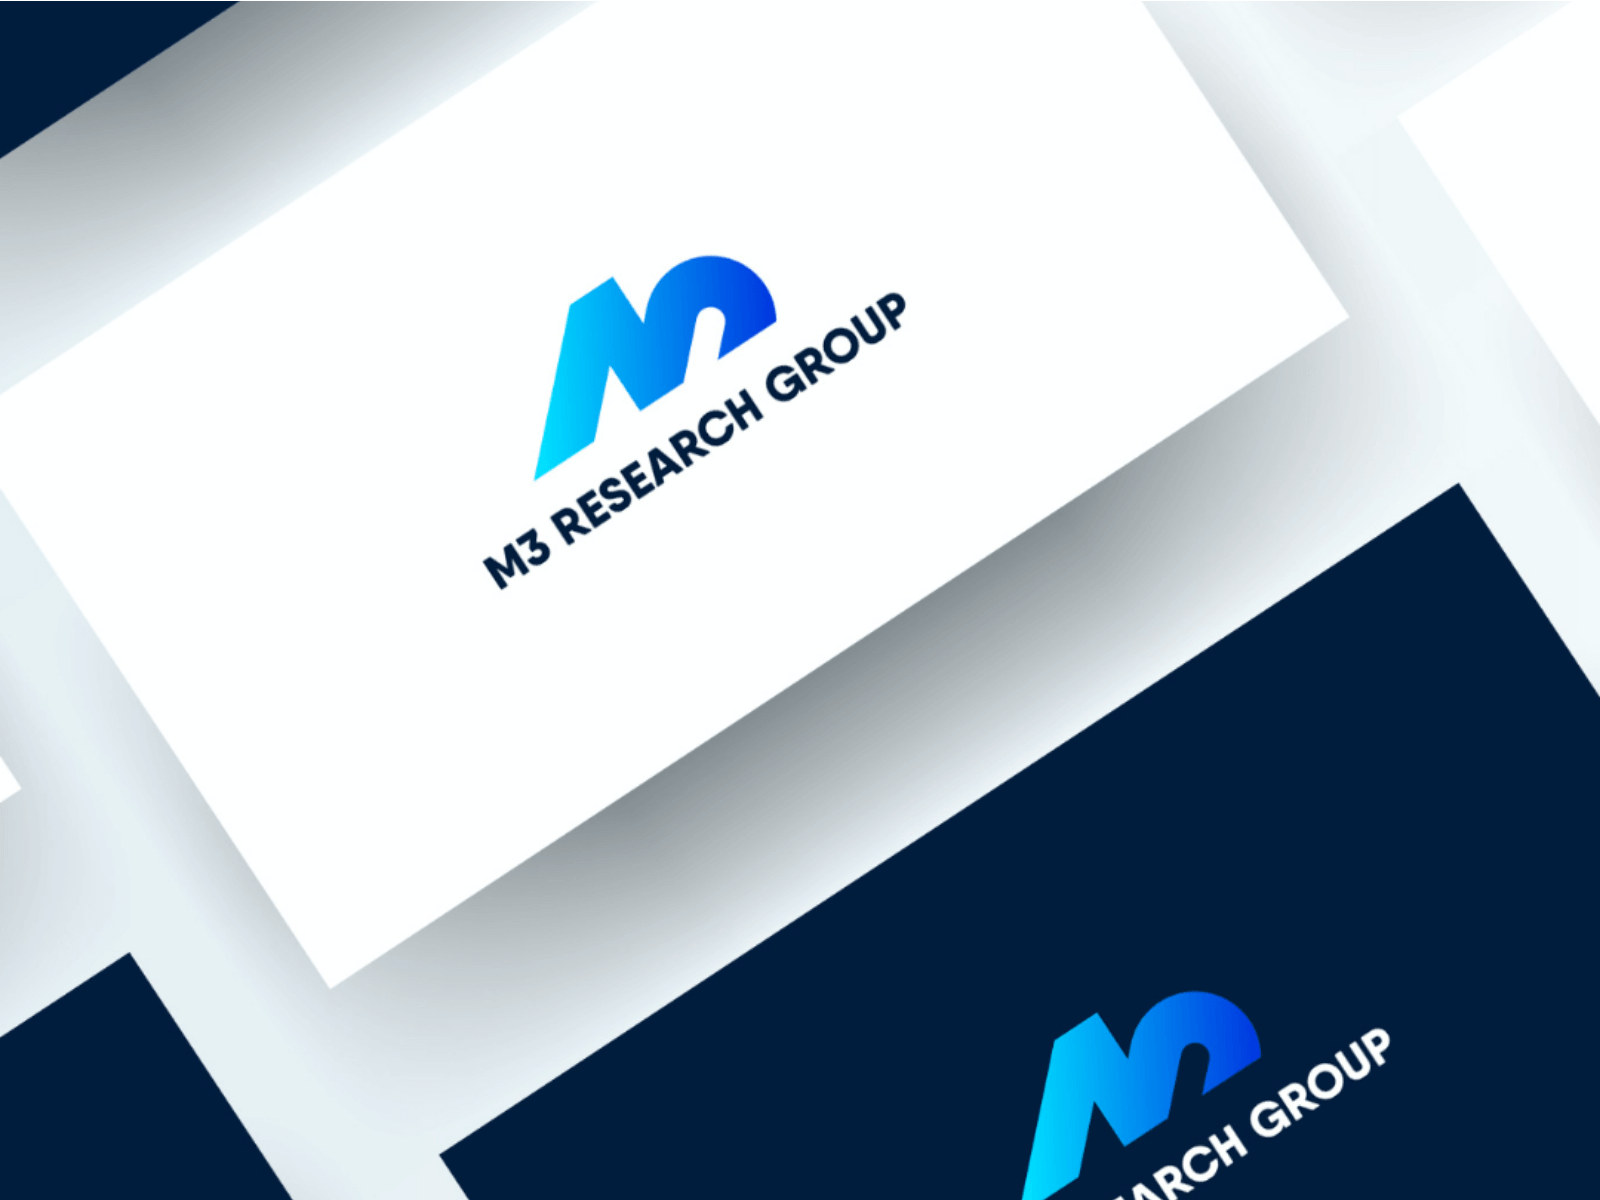 M3 Research Group Branding